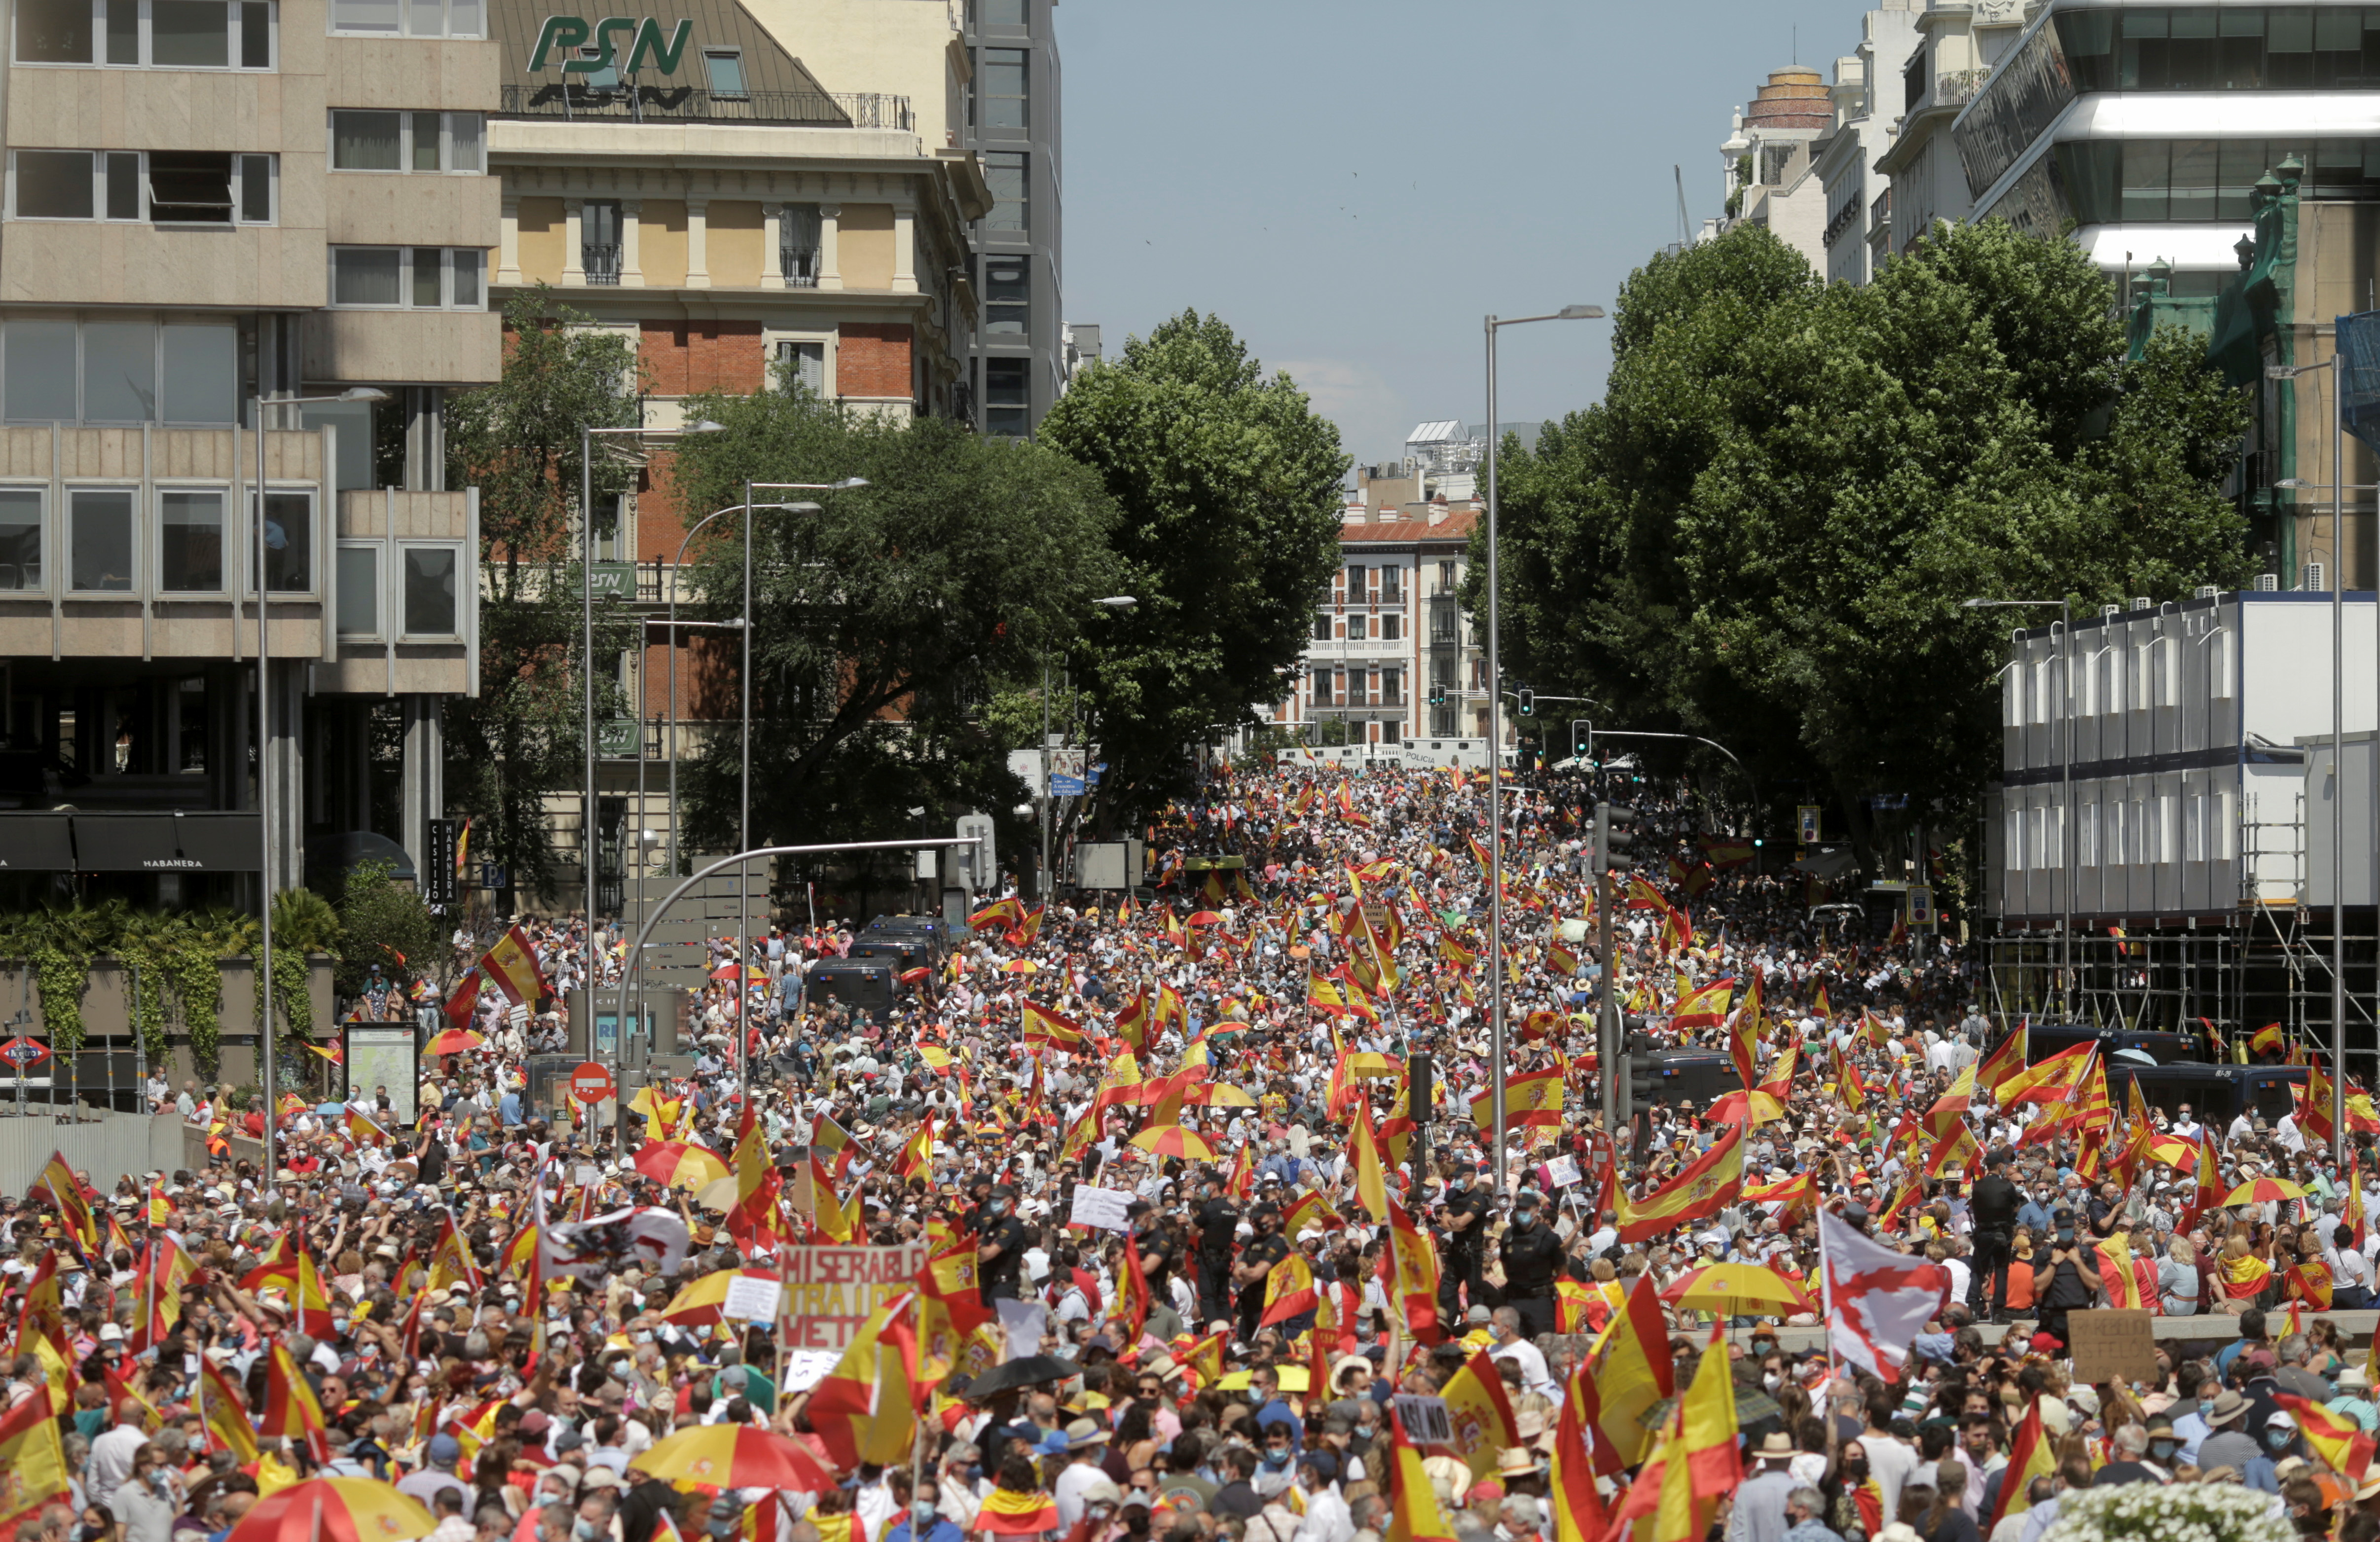 People demonstrate against a plan by the Spanish government to concede pardon to the Catalan politicians who promoted a failed independence declaration of the region in 2017, in Madrid, Spain, June 13, 2021. REUTERS/Javier Barbancho